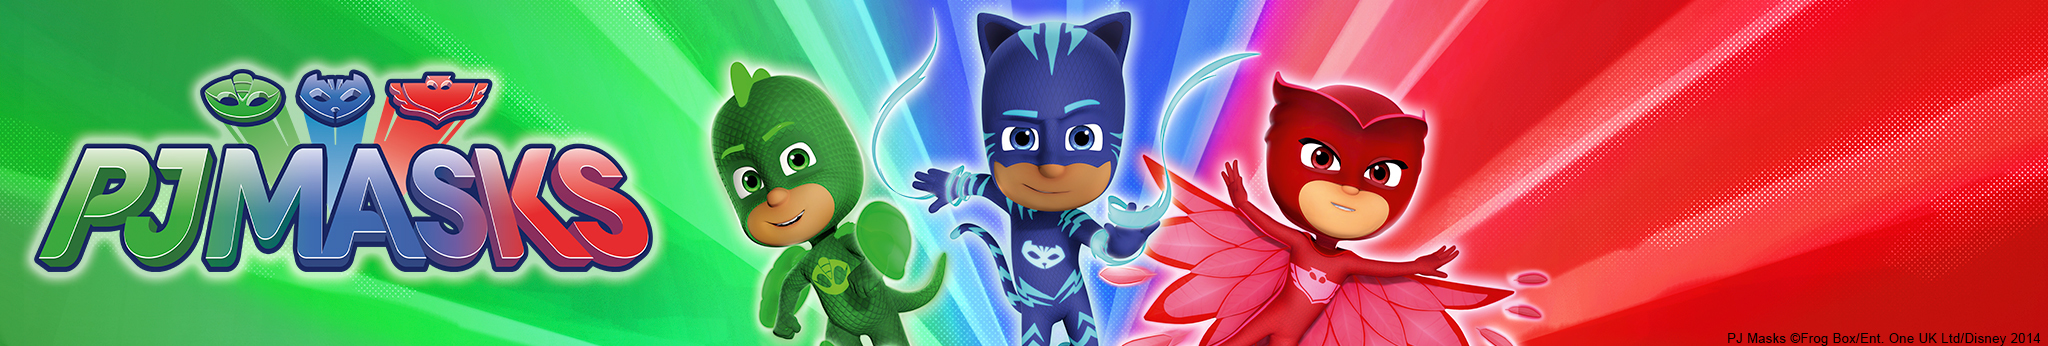 Pj Masks Cake Decorations For Bakery for Cake Decorations